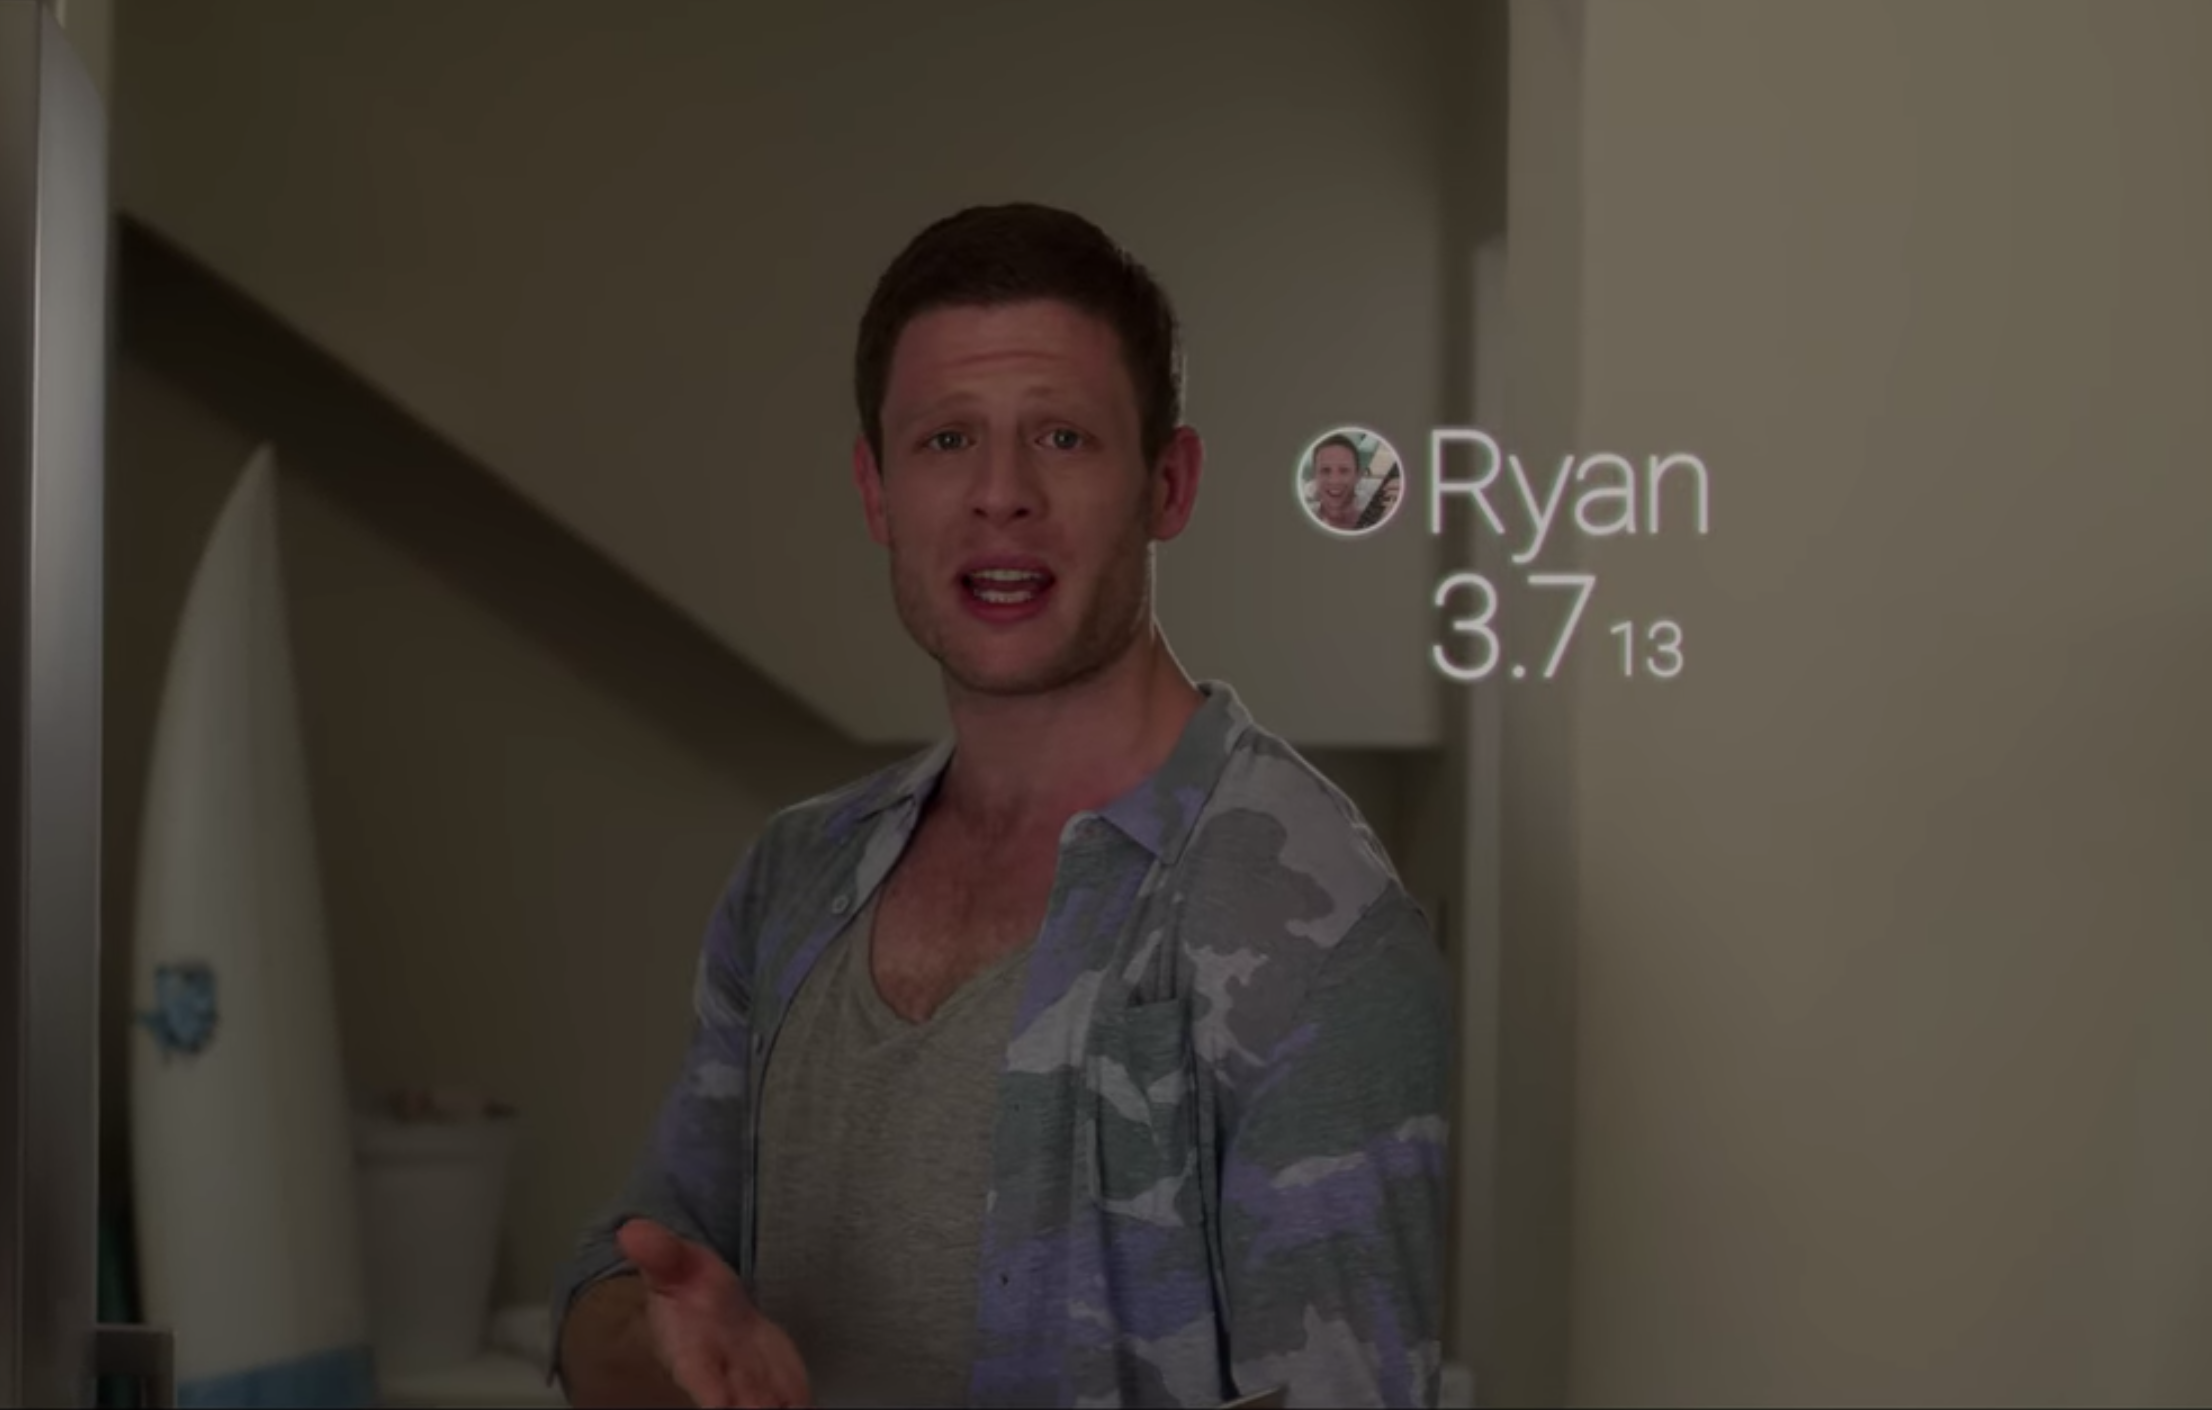 """Ryan in """"Black Mirror"""" with his ranking on screen: a """"3.713"""""""